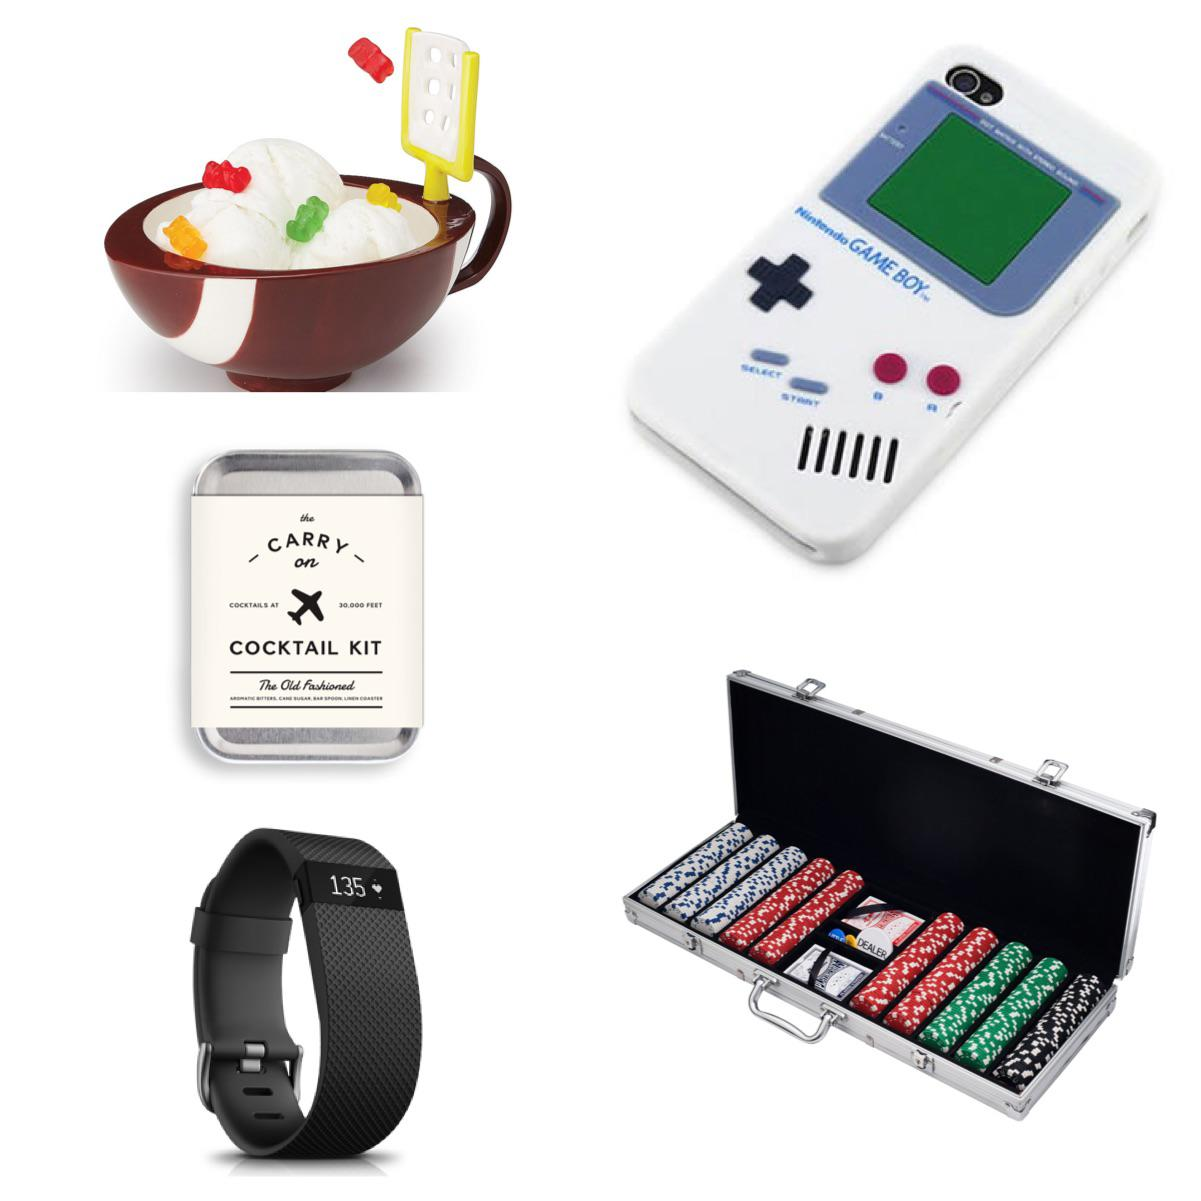 Christmas Gift Guide: 5 Picks for Him - Small Towns & City Lights